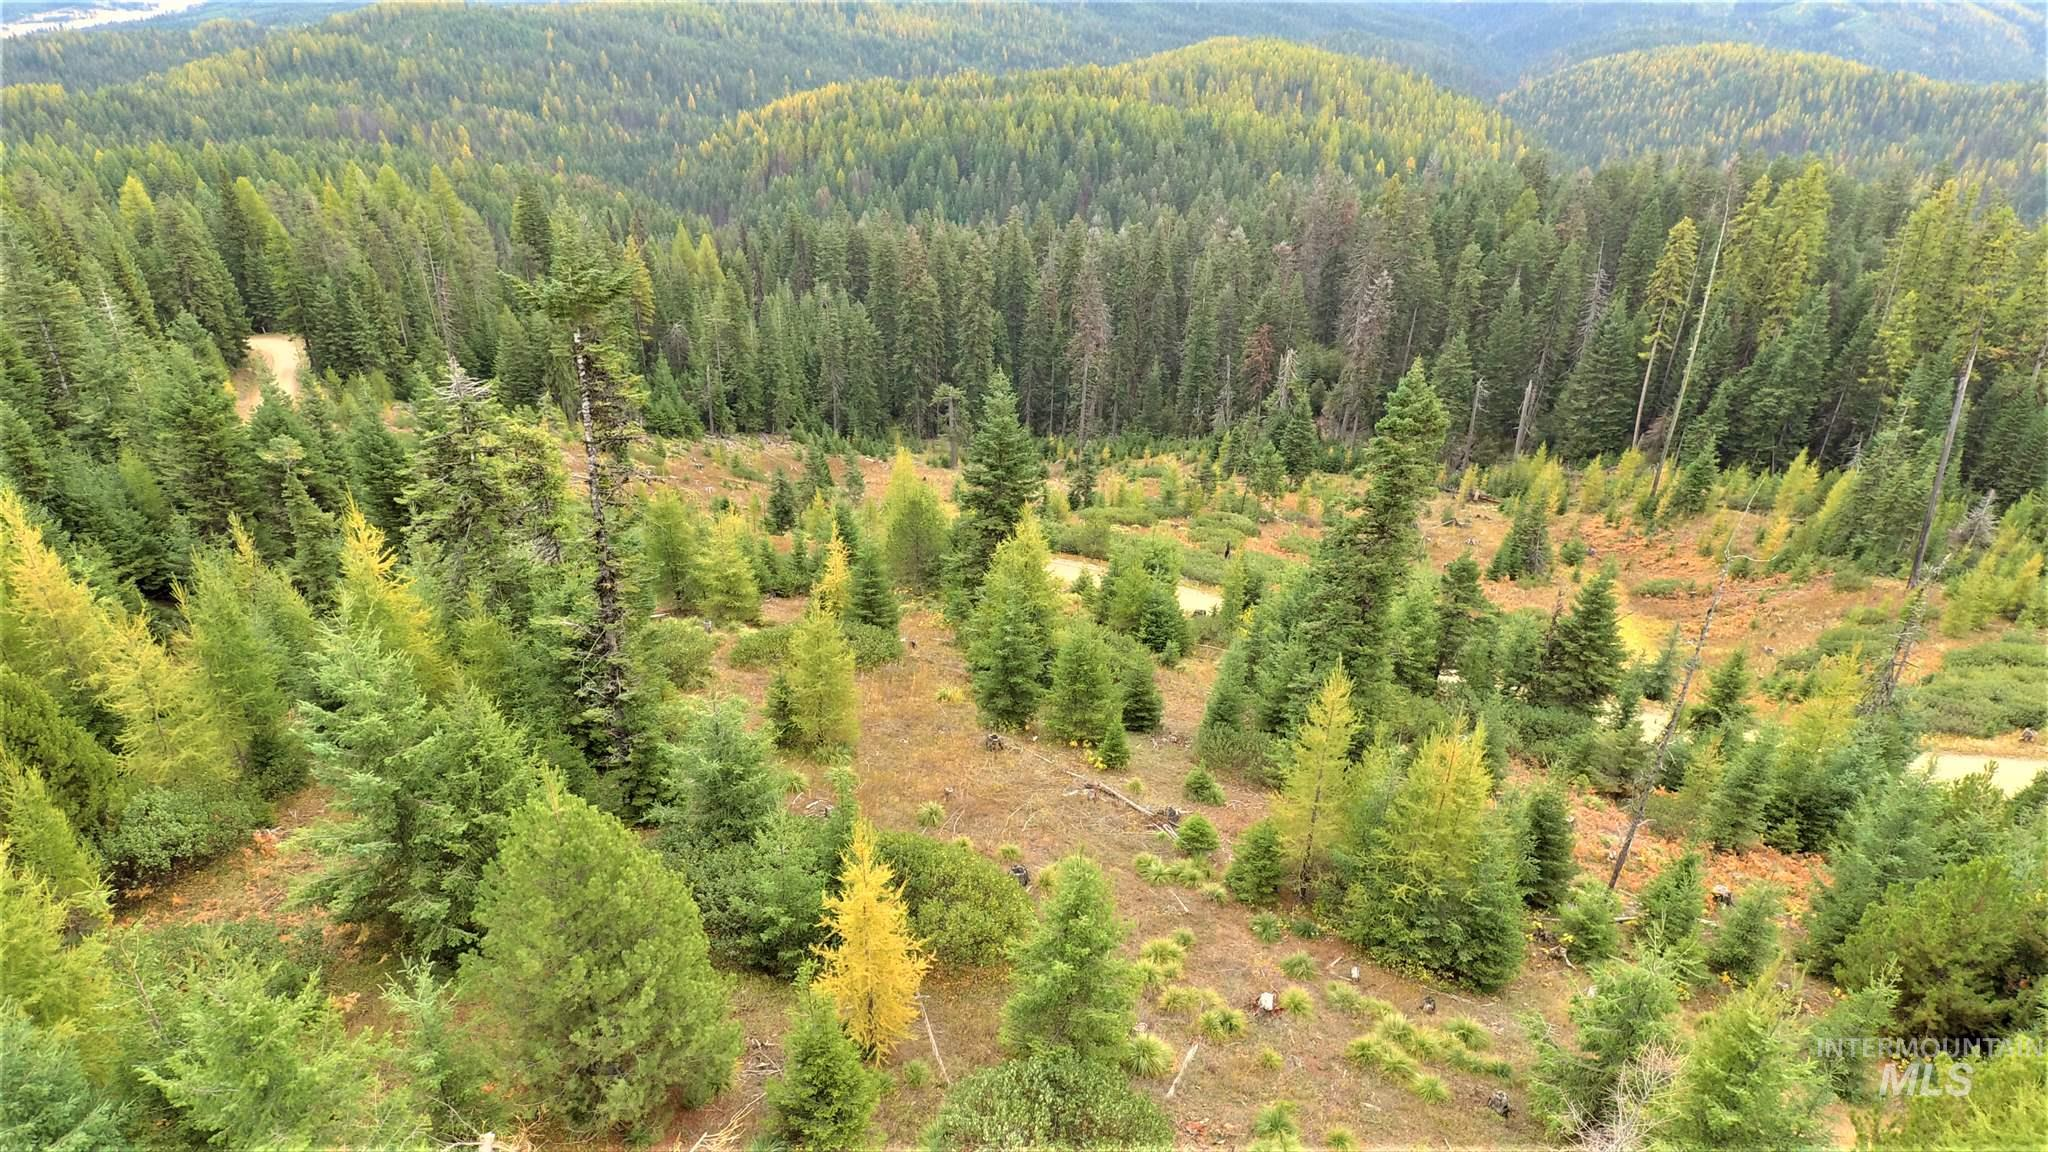 TBD Elk Summit Properties Parcel 6 Property Photo - Elk City, ID real estate listing